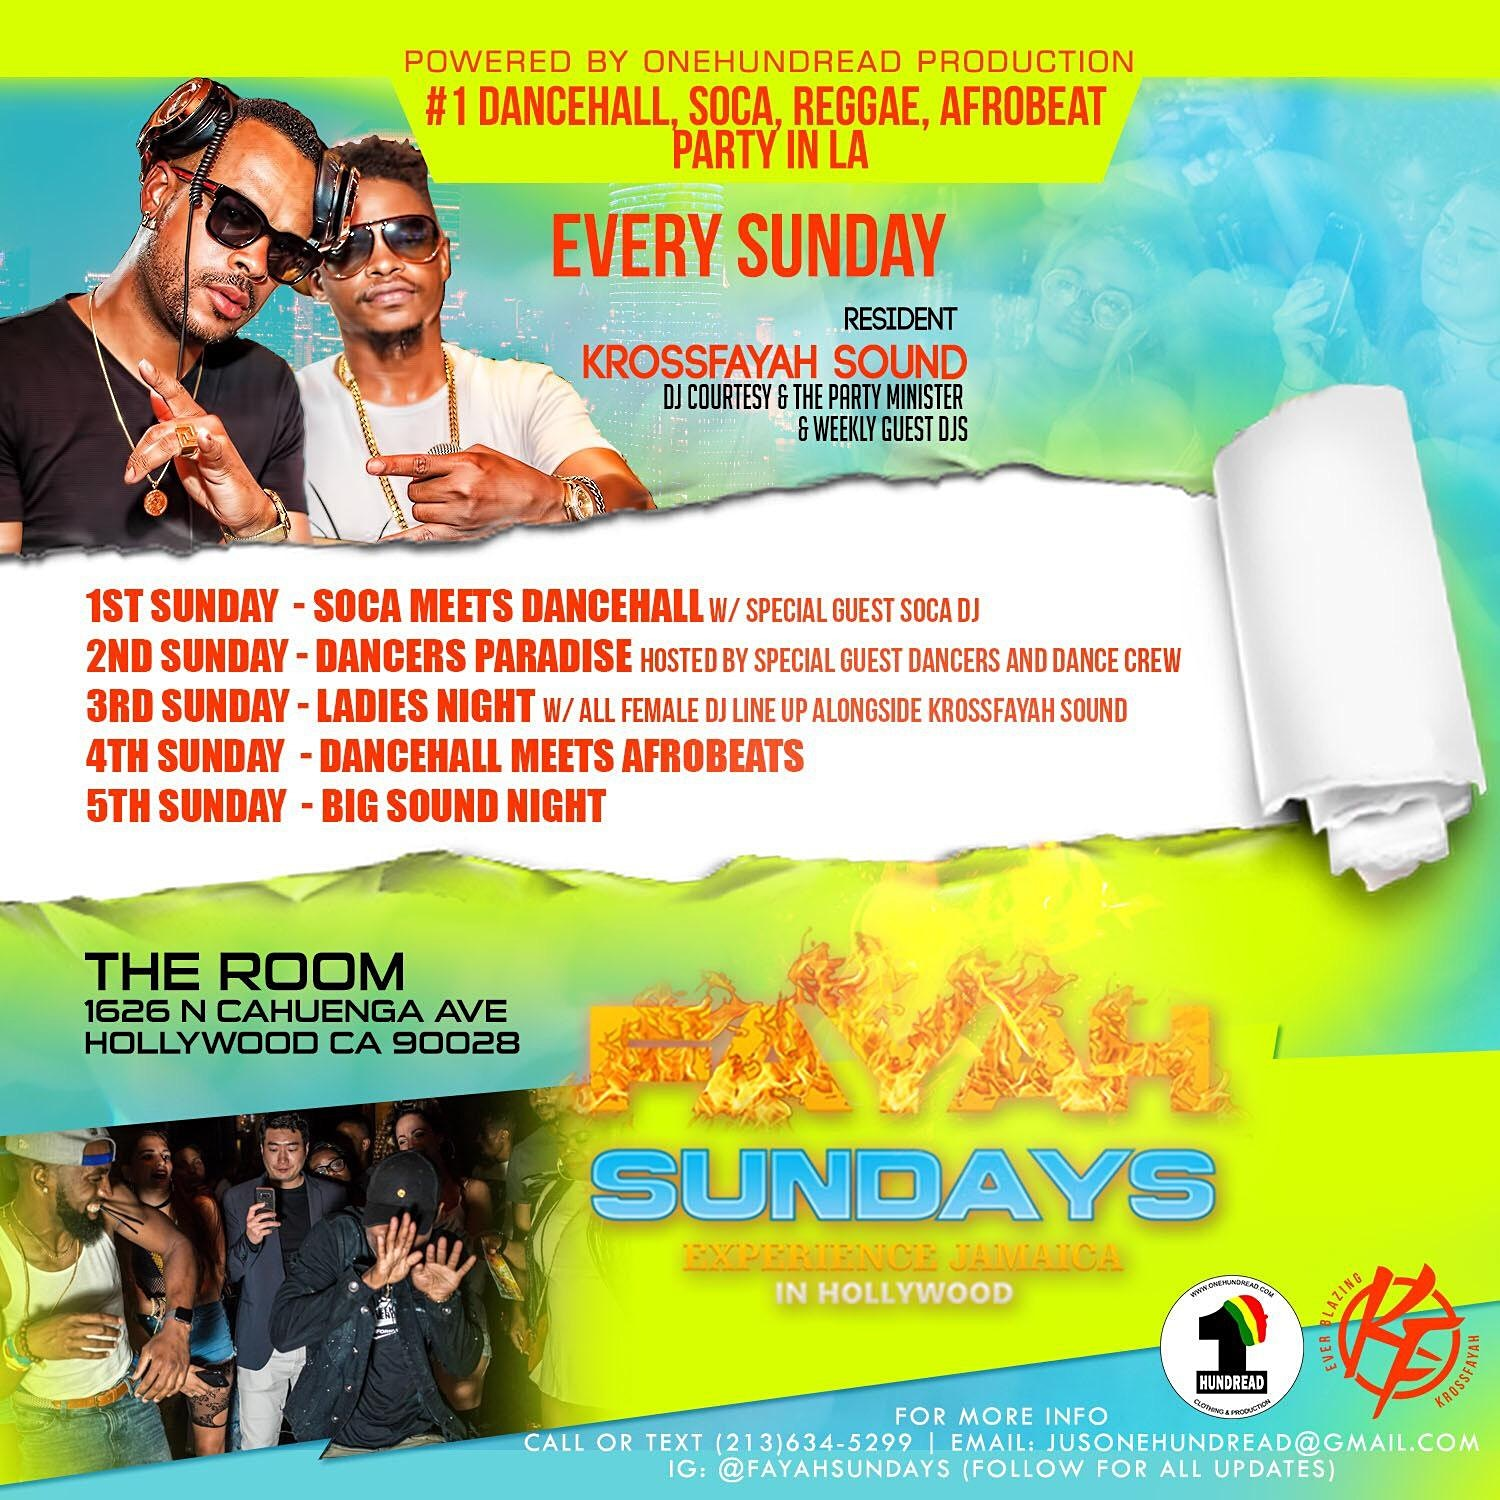 FAYAH SUNDAYS - NO.1 DANCEHALL REGGAE SOCA PARTY IN HOLLYWOOD LOS ANGELES